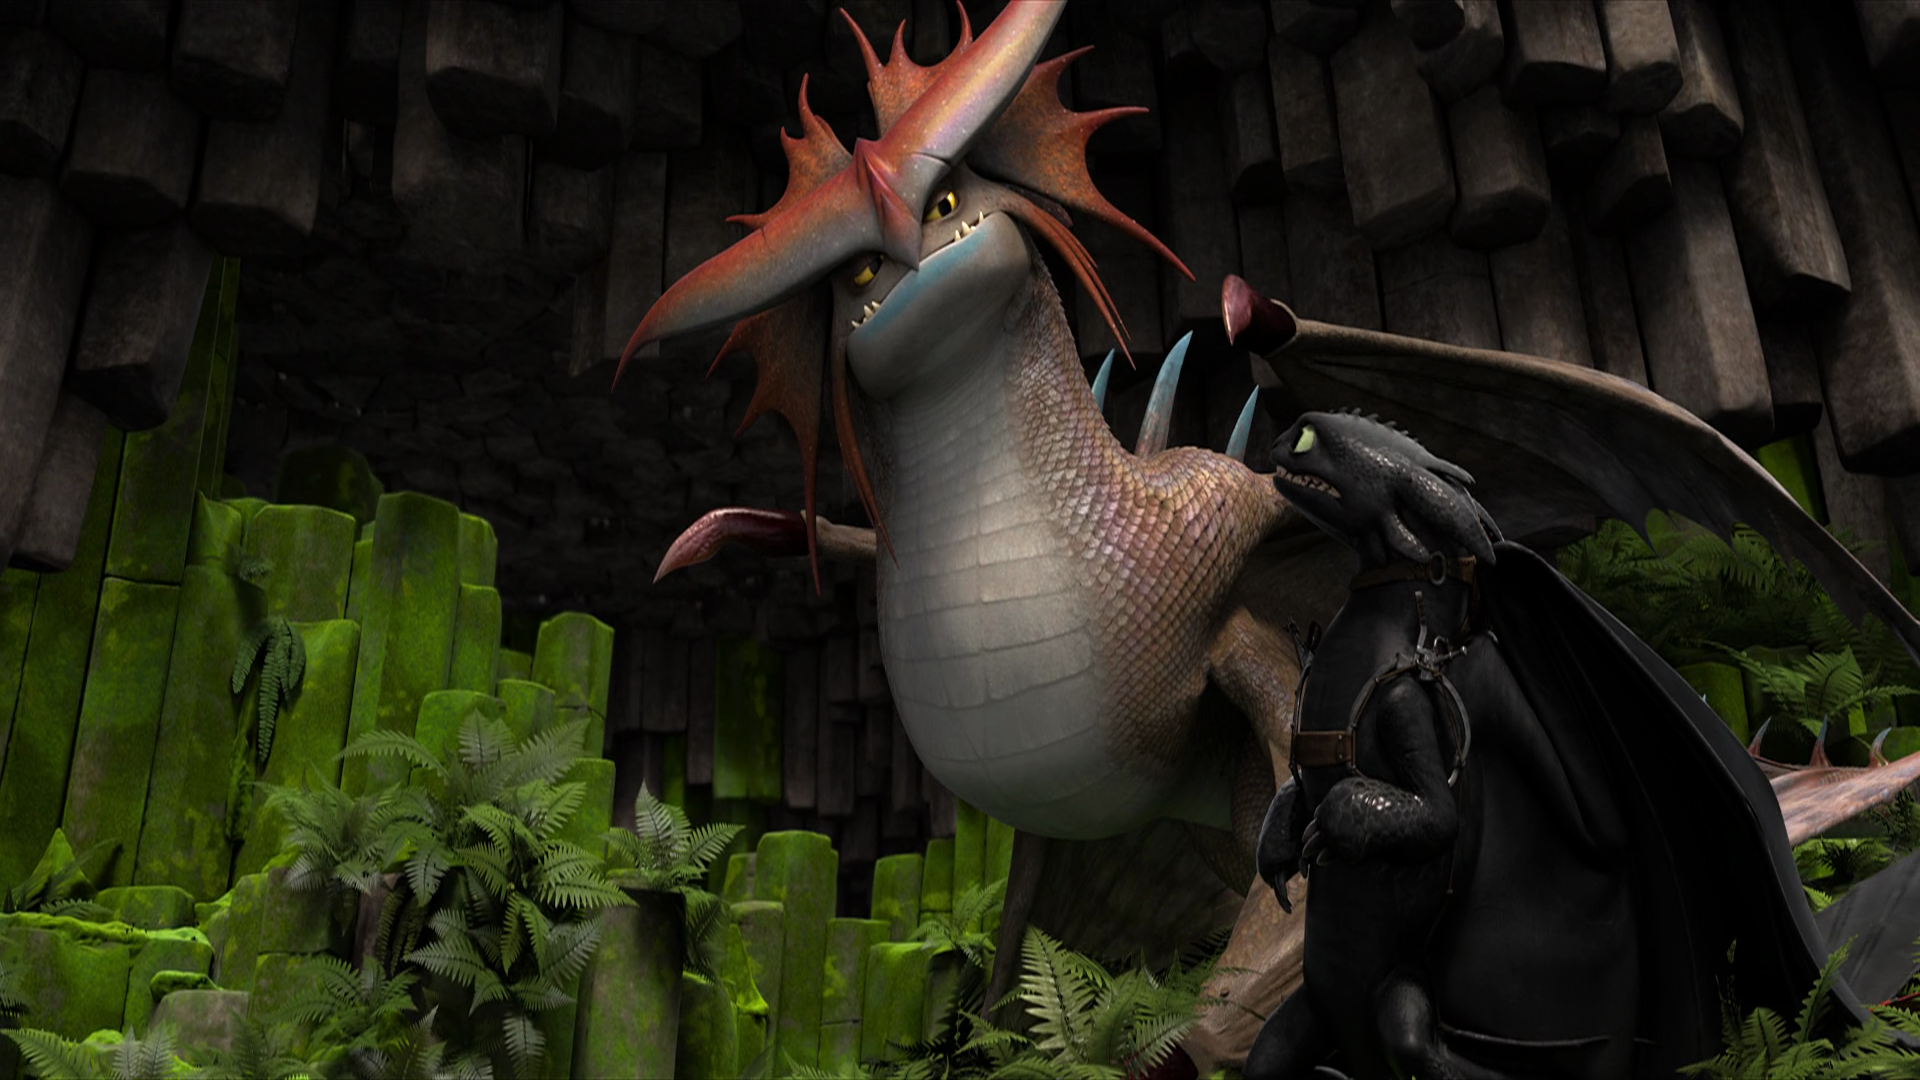 How To Train Your Dragon 2 Full HD Wallpaper And Background Image